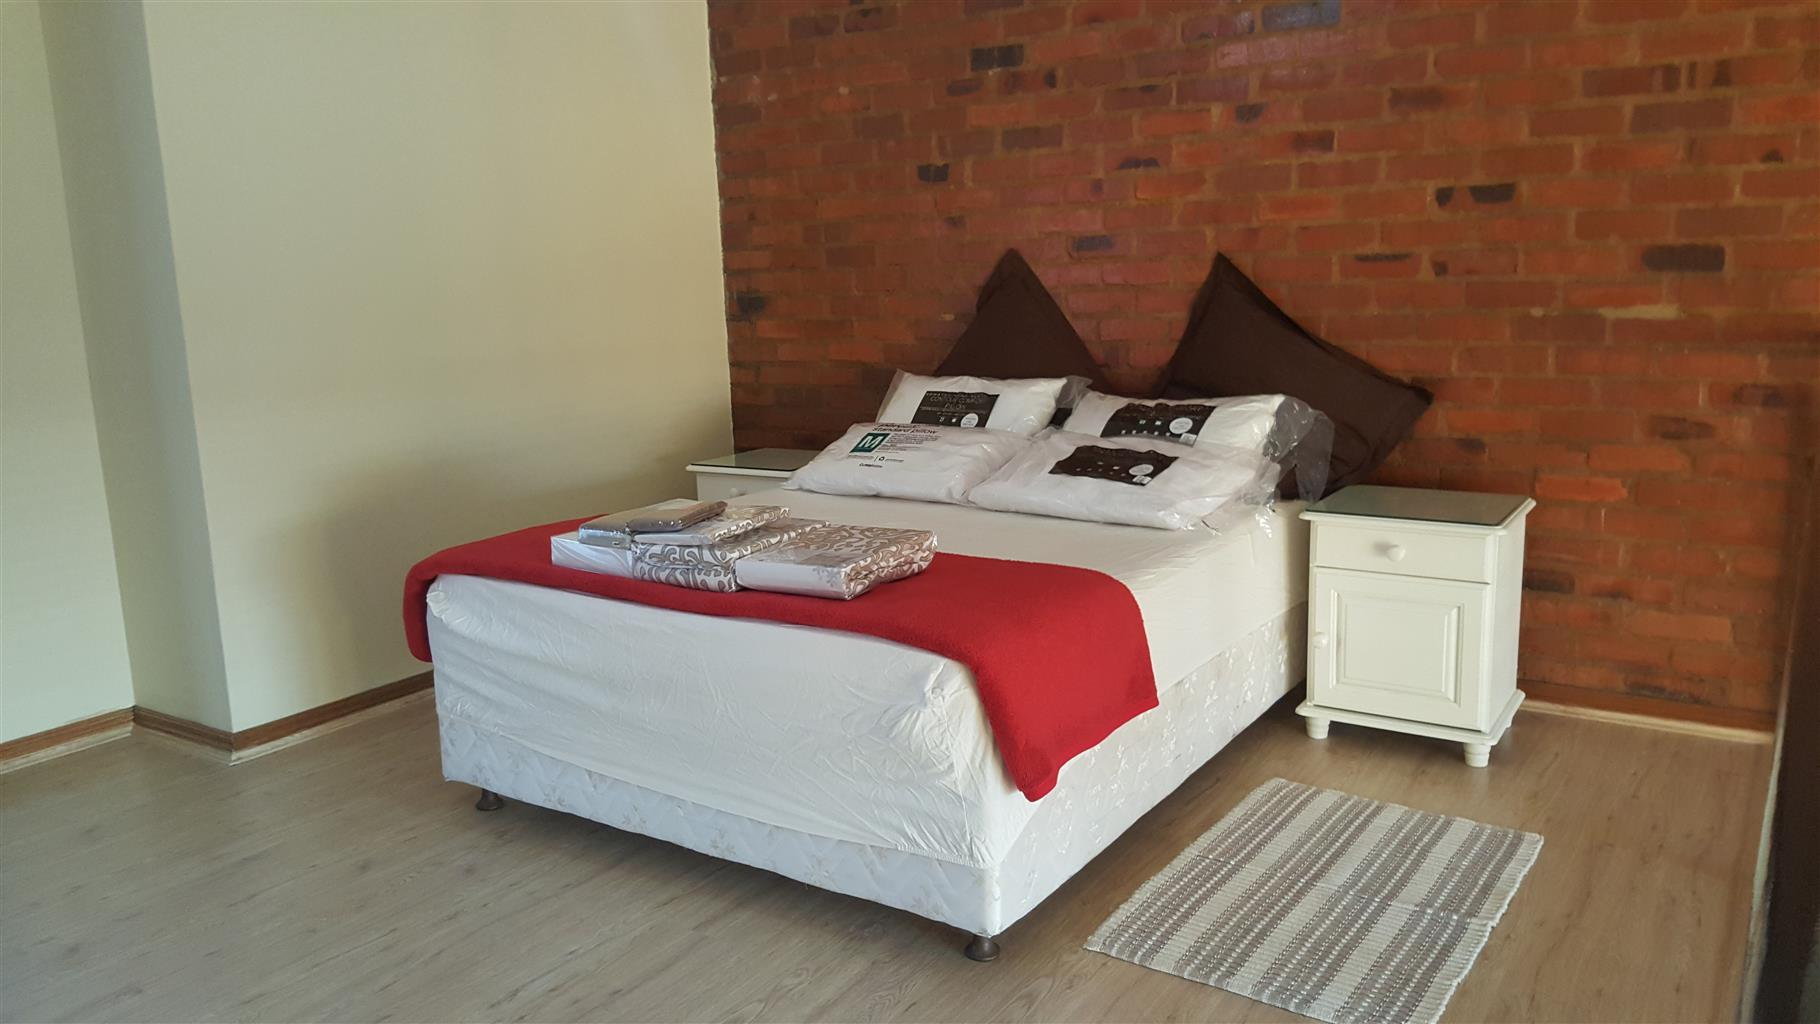 FULLY FURNISHED BACHELOR LOFT APARTMENT TO LET IN HILLTOP LOFTS, MIDRAND BY FEEL-AT-HOME PROPERTIES